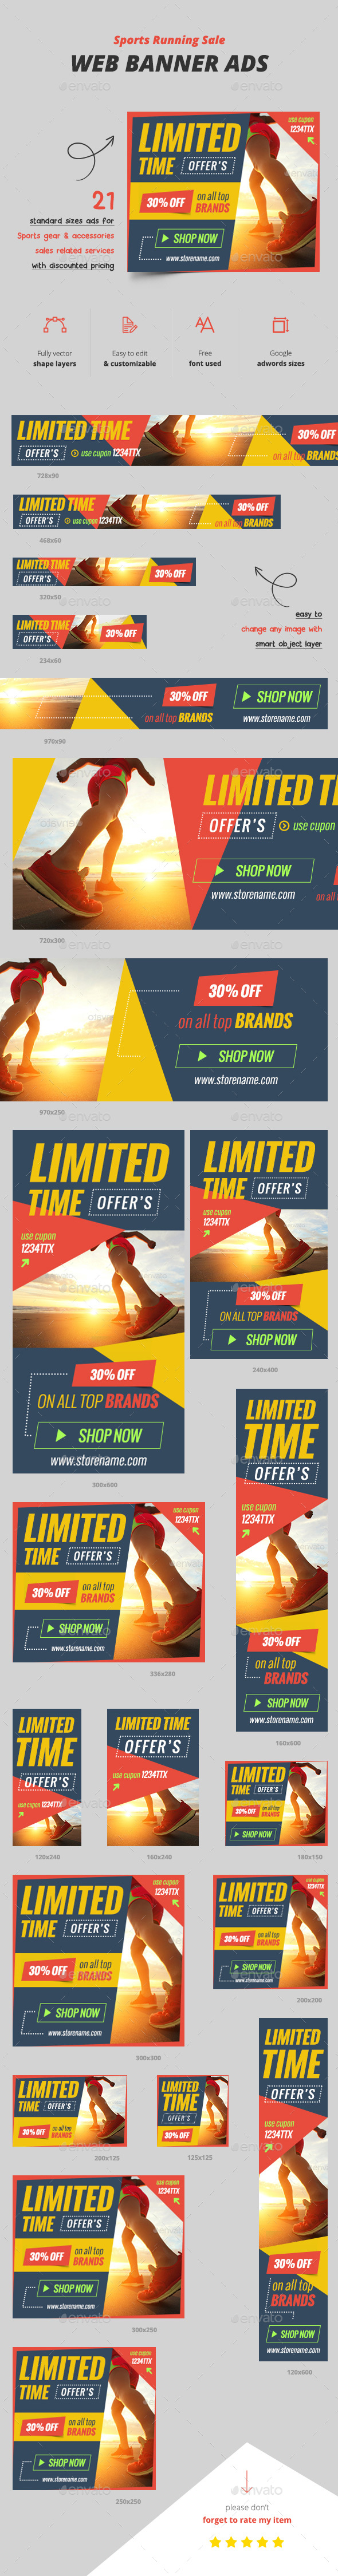 Sports Running Sale Web Ads - Banners & Ads Web Elements